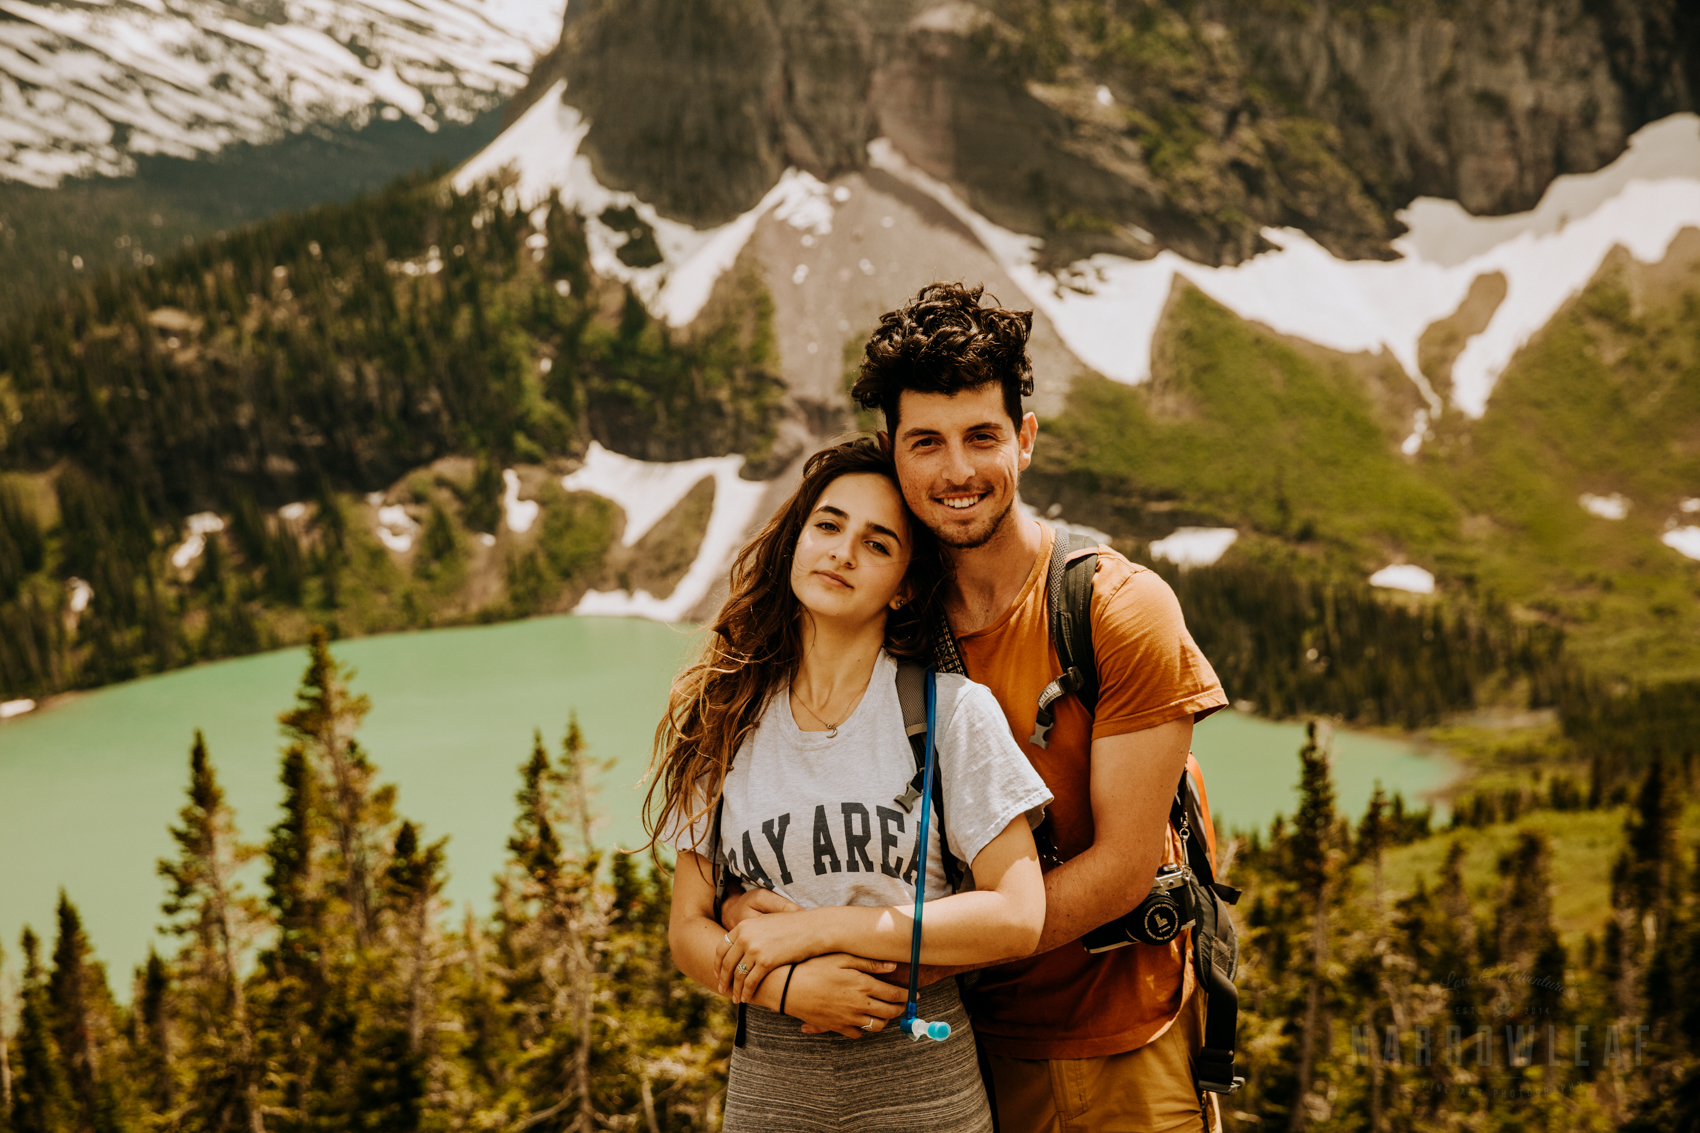 montana-glacier-national-park-mountain-hiking-engagement-session-Narrowleaf_Love_and_Adventure_Photography-9779.jpg